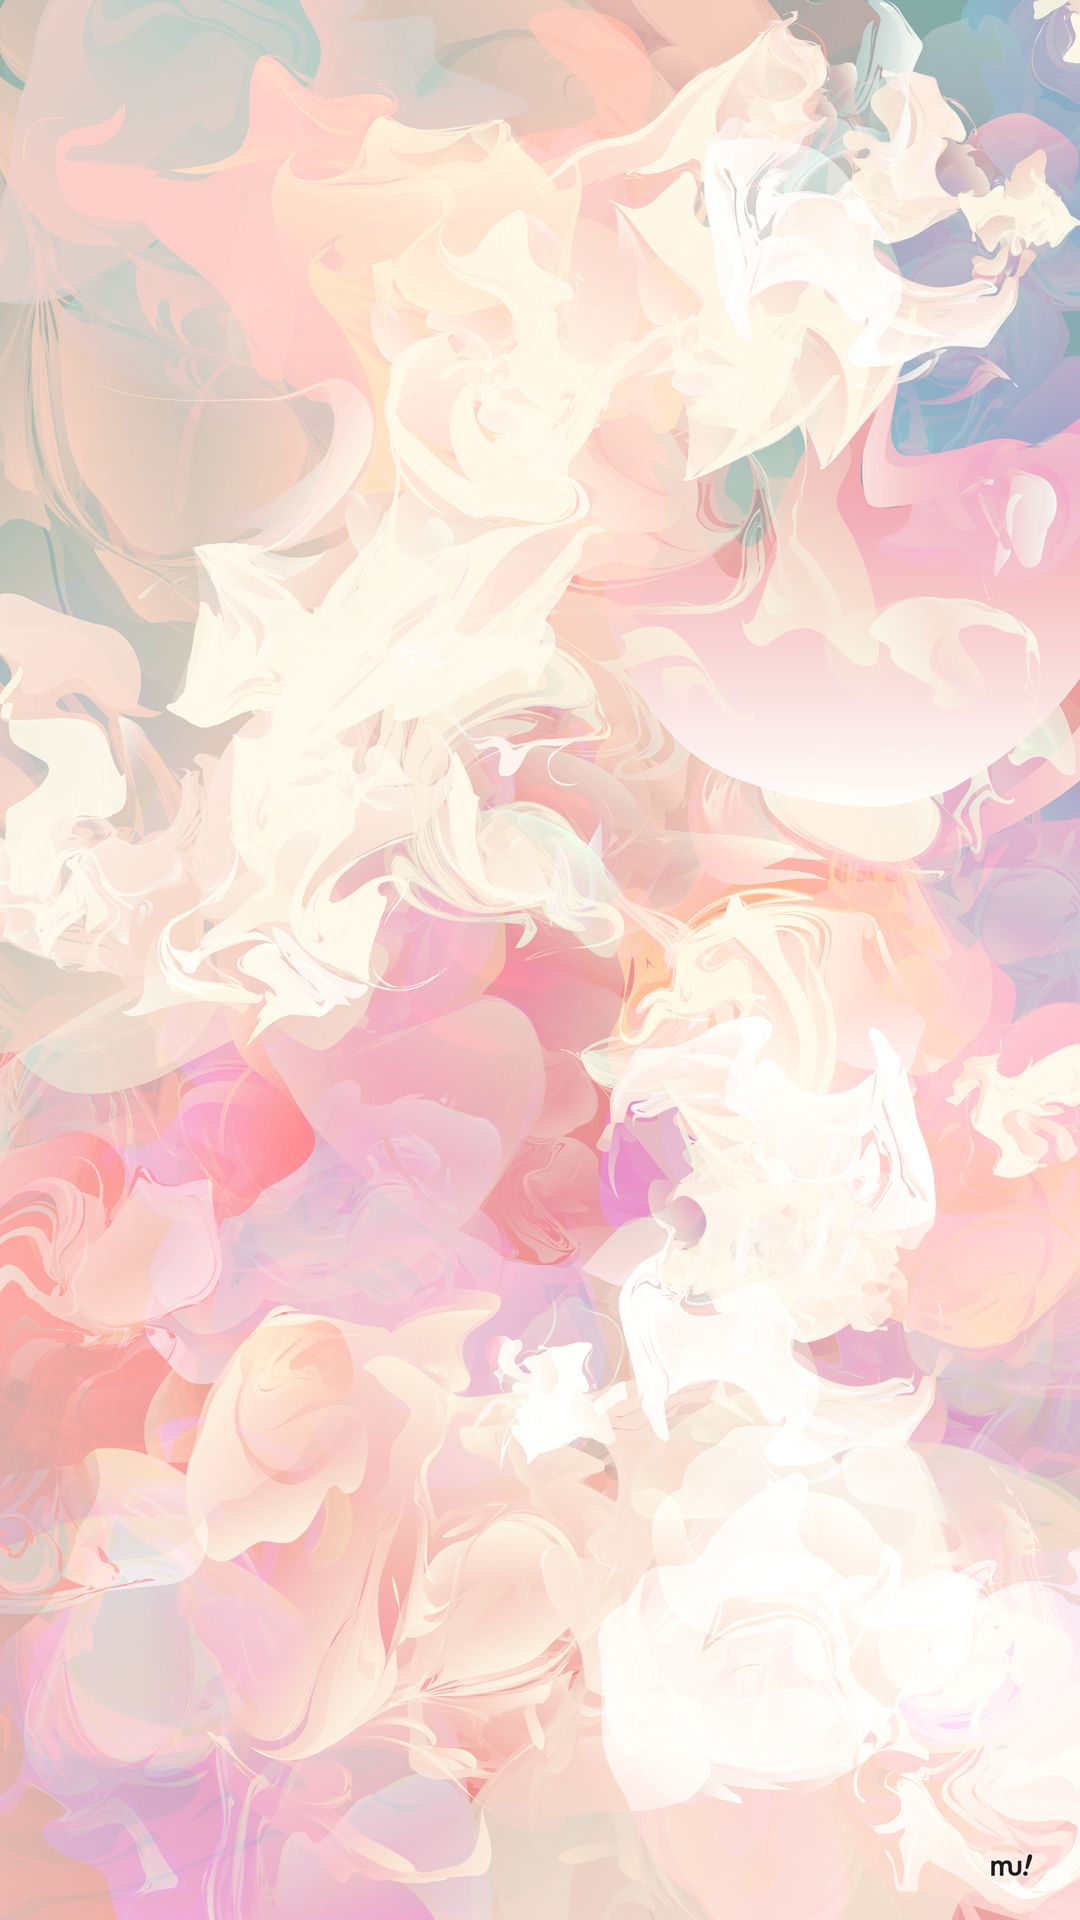 Artistic Wallpaper Pastel Background Design